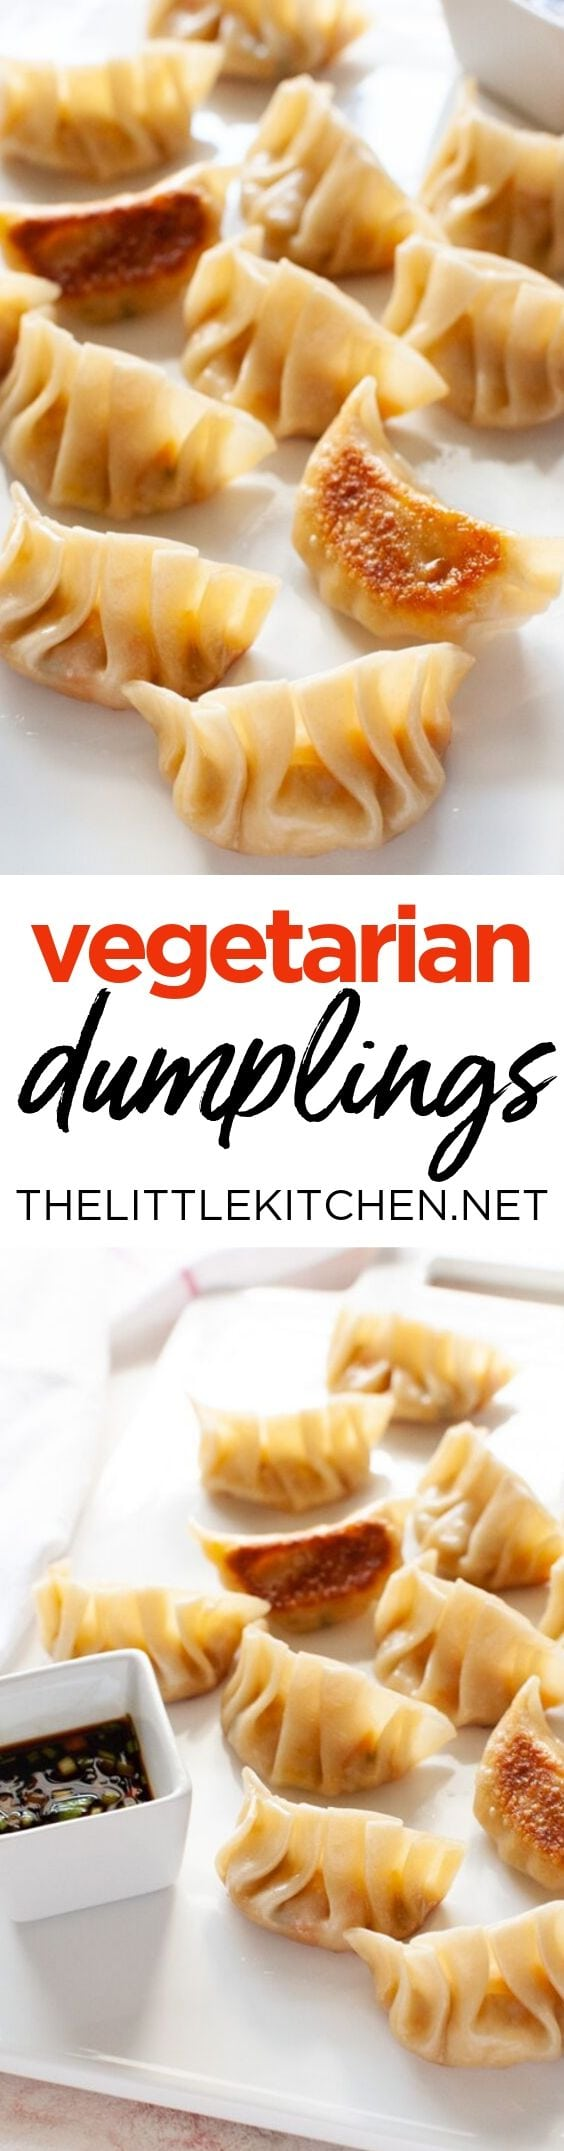 Vegetarian Dumplings from thelittlekitchen.net